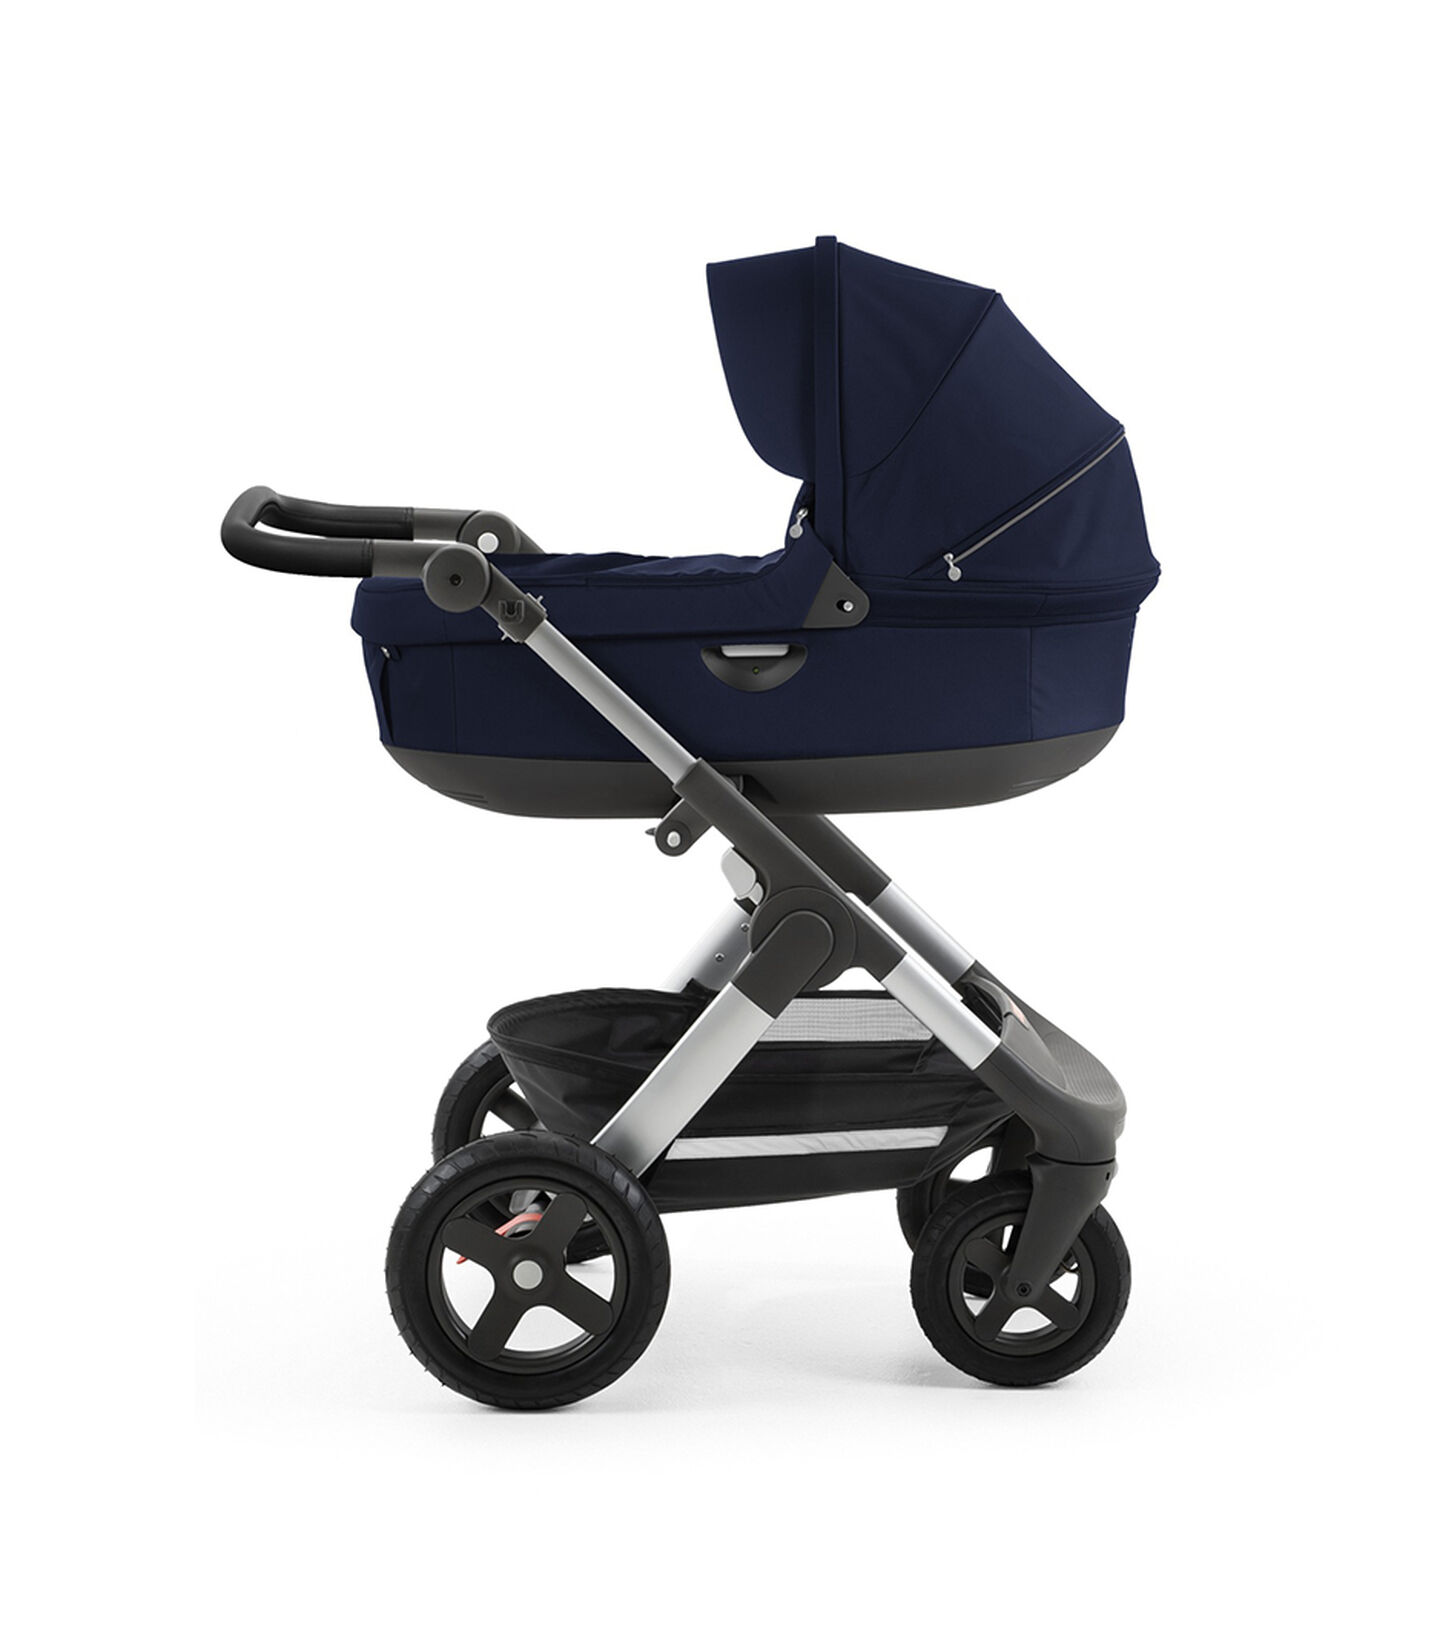 Stokke® Trailz™ with silver chassis  and Stokke® Stroller Carry Cot, Deep Blue. Leatherette Handle.